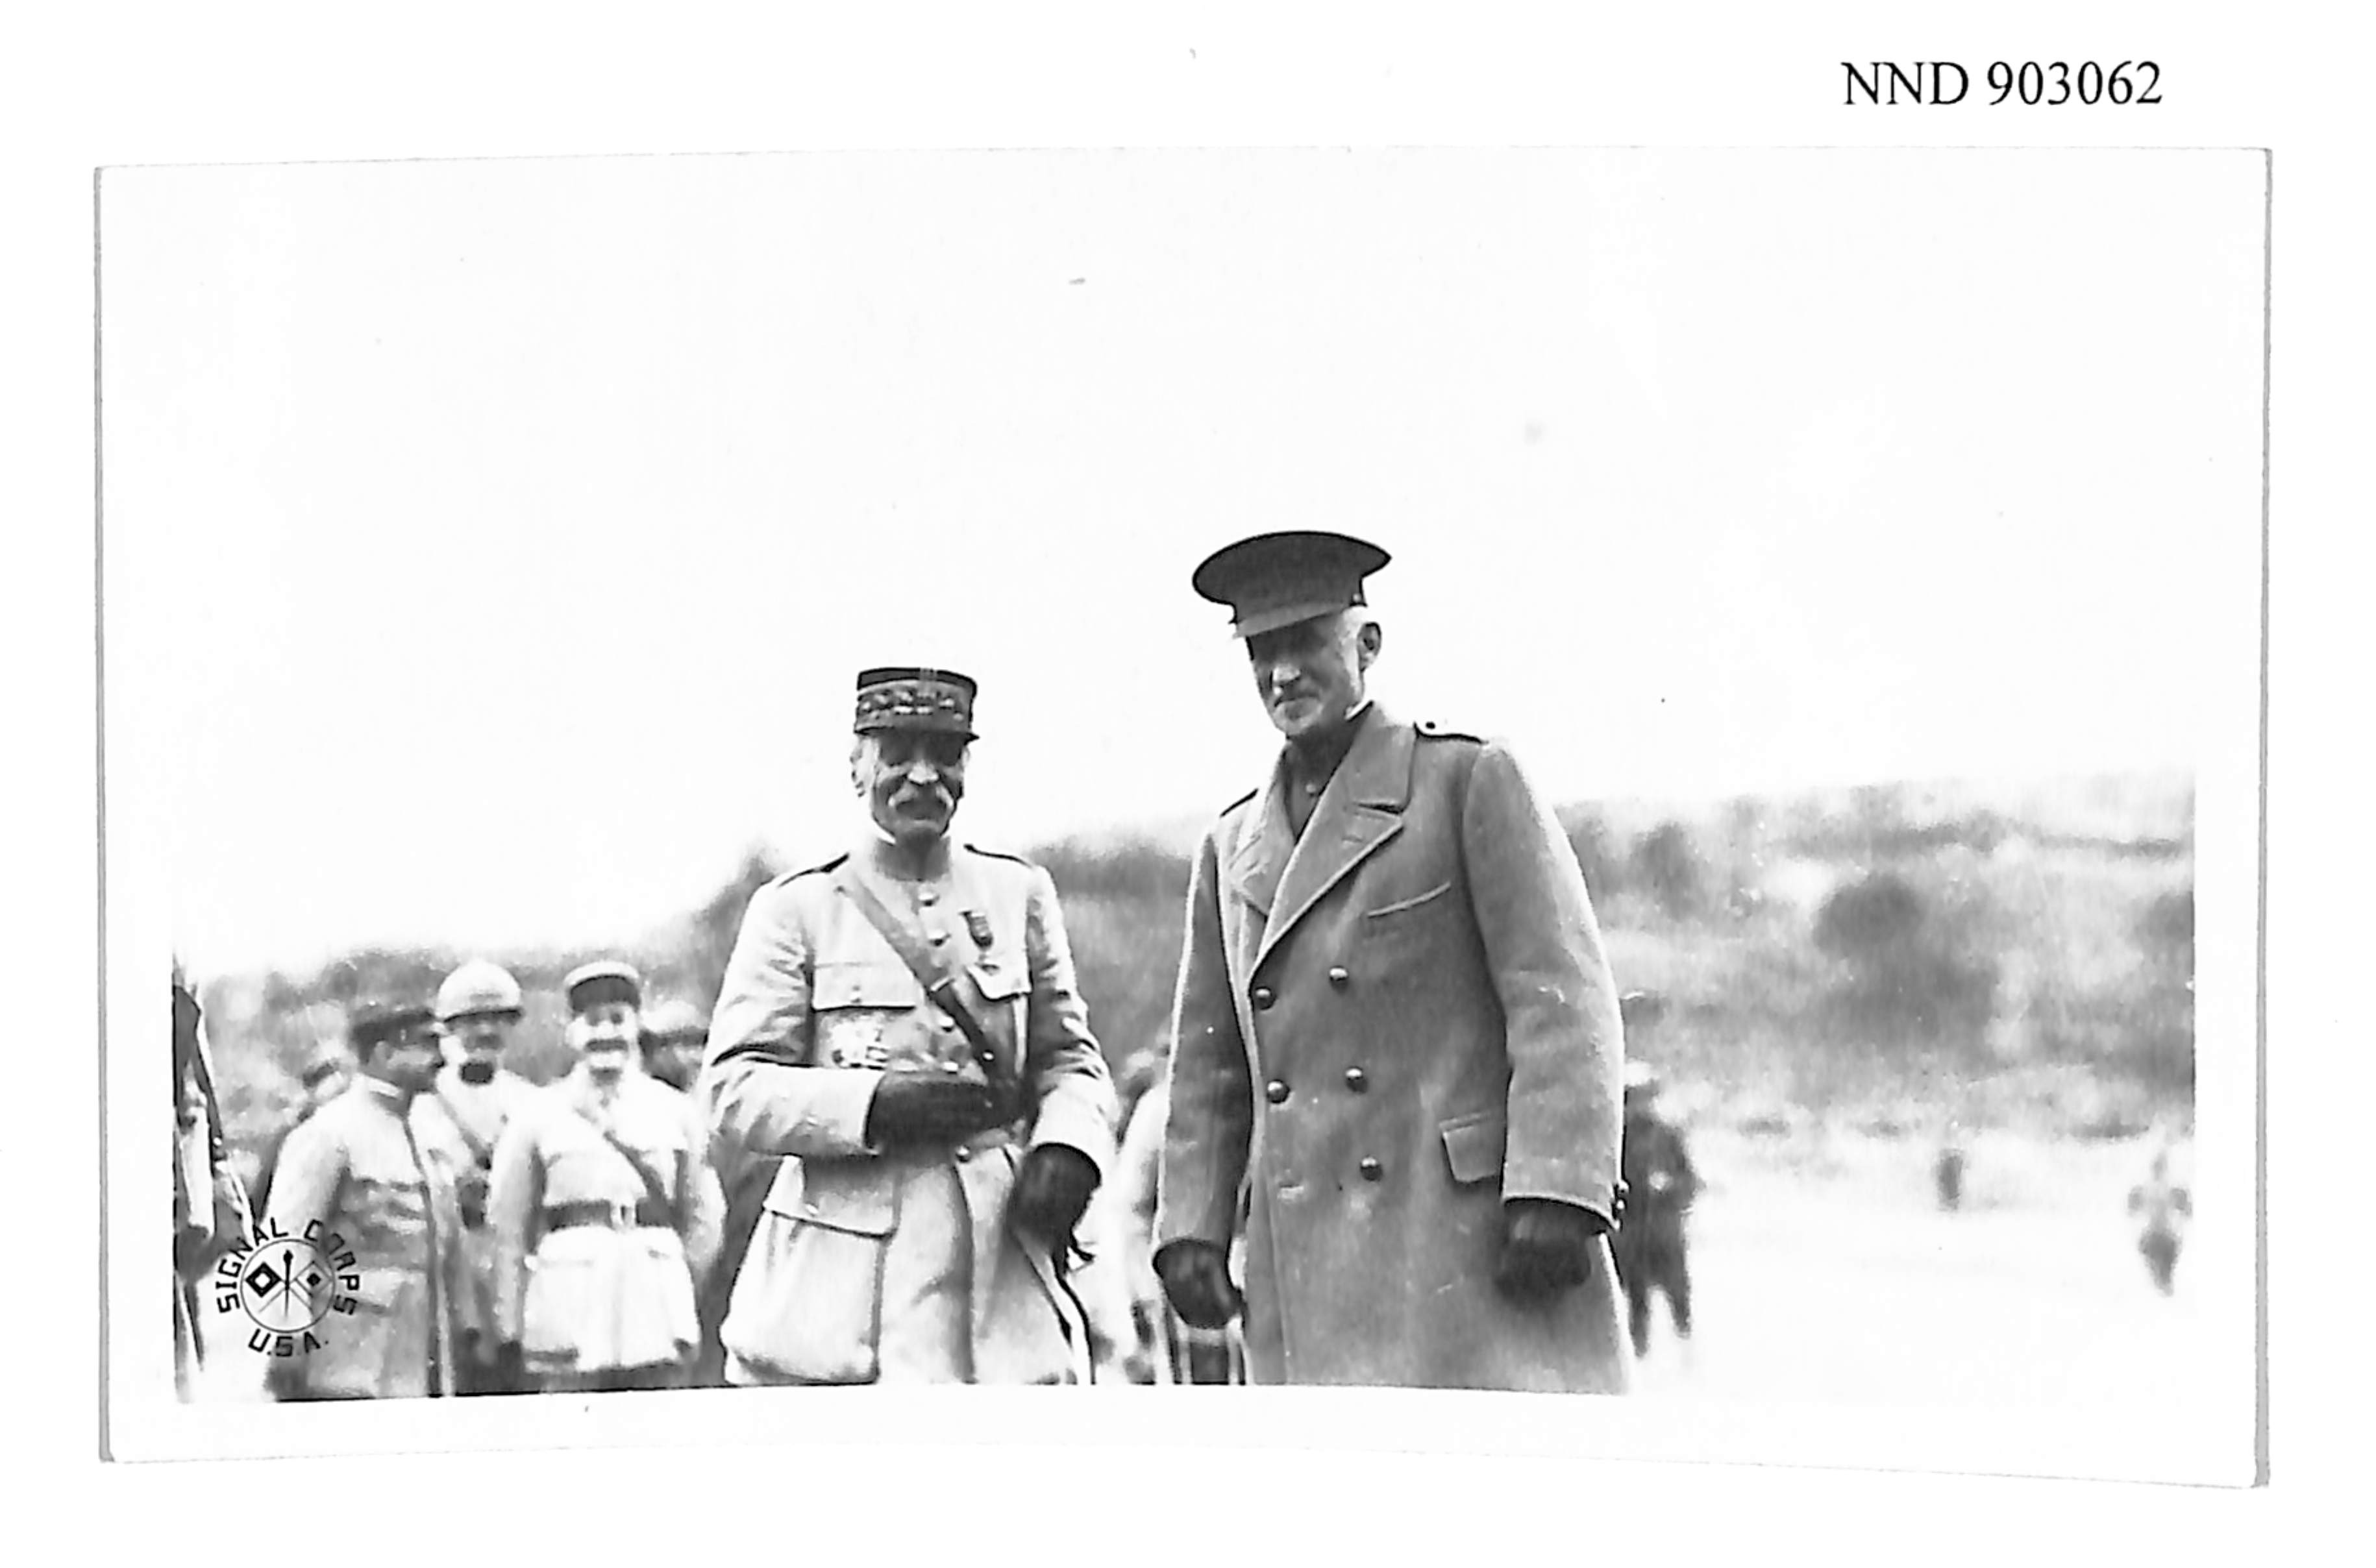 Generals Maud'huy and Edwards stand side by side facing camera